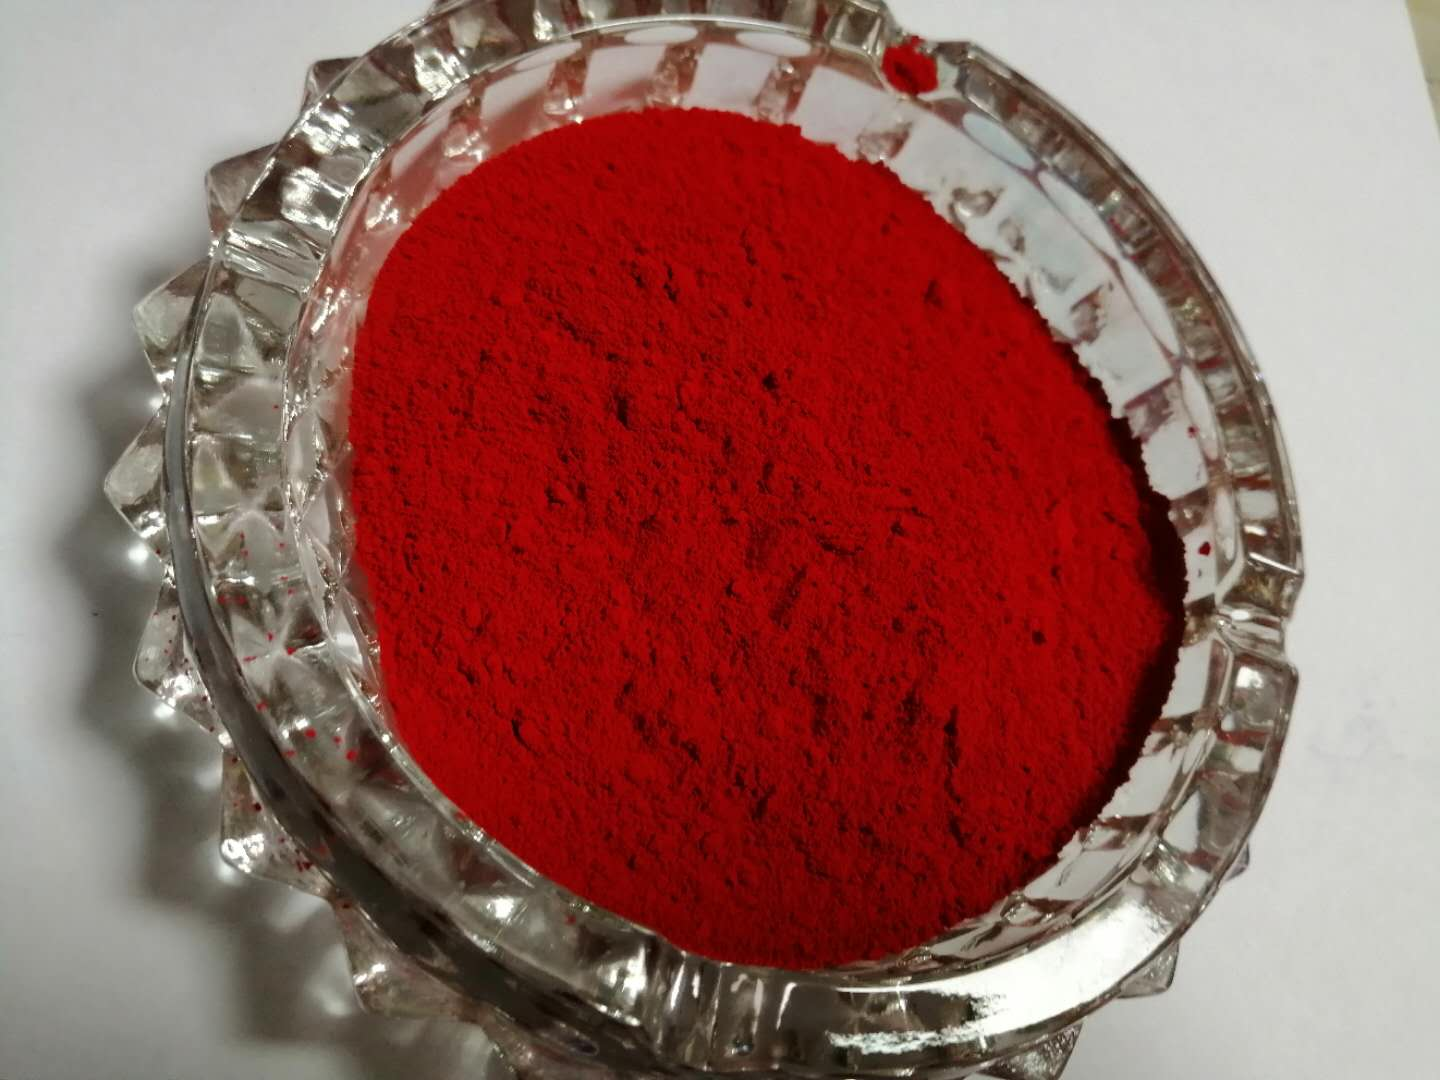 Pigment Red 22 Insoluble In Water High Heat Resistance Highly Recommend For Wax Coating, Plastic And Oil Based